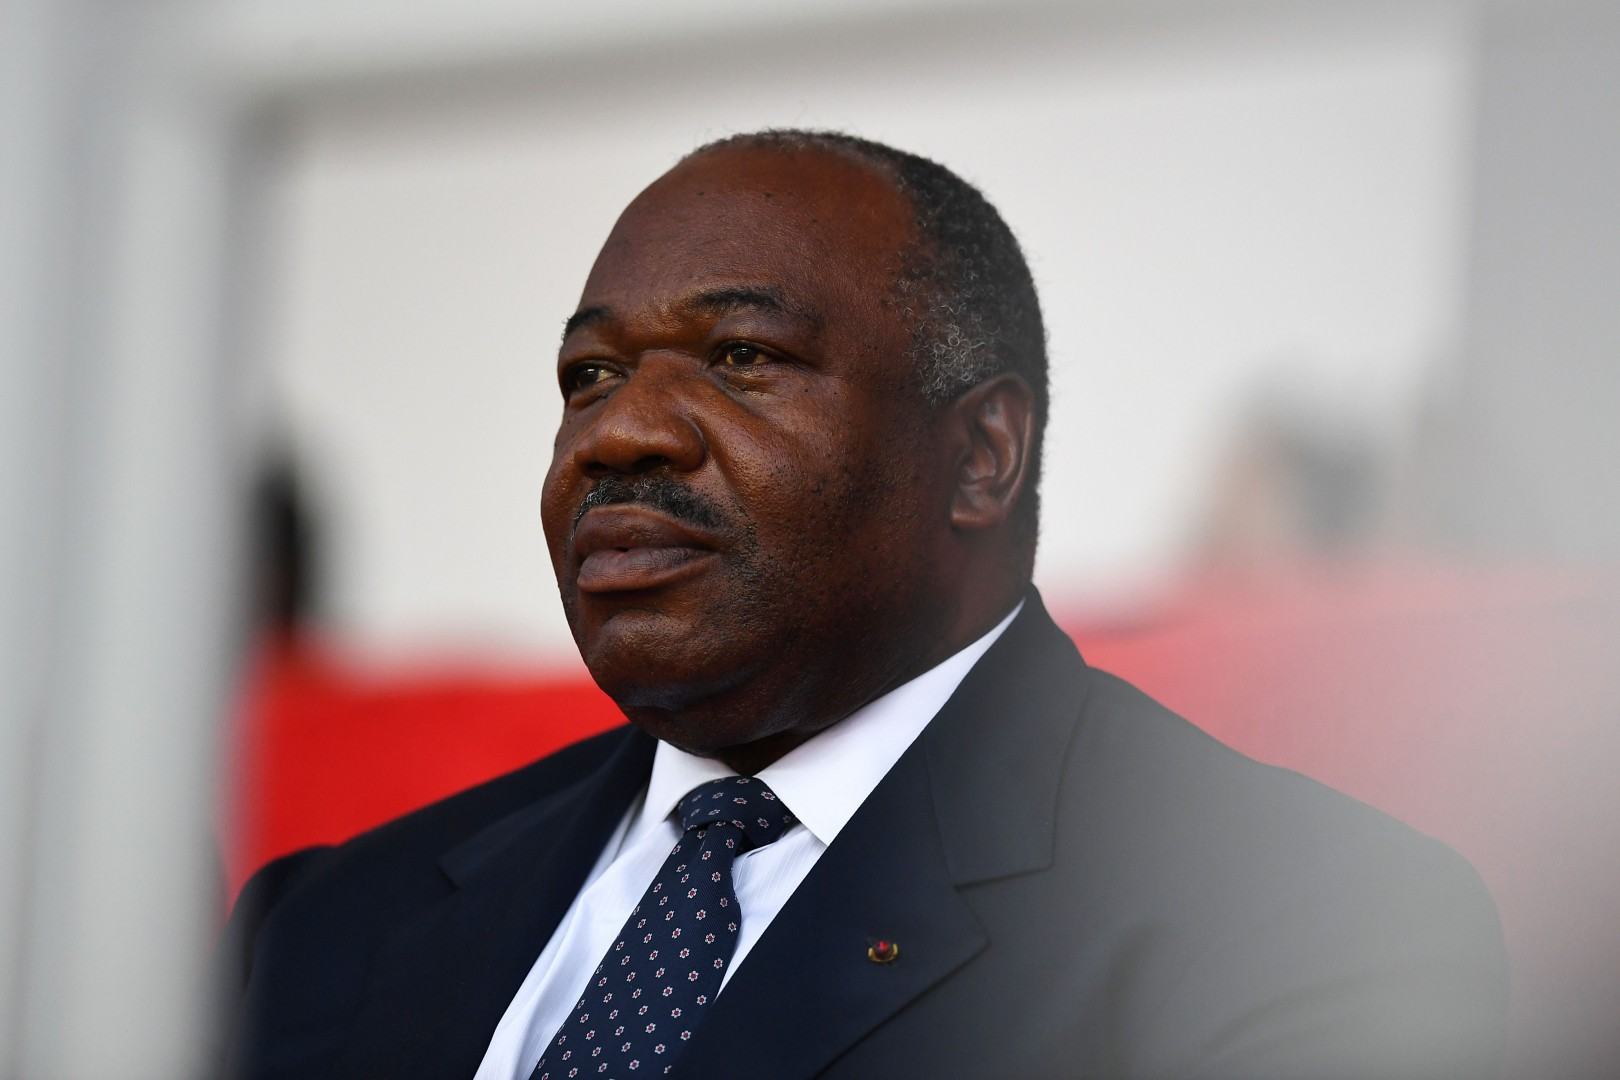 (FILES) In this file photo taken on February 05, 2017 Gabonese President Ali Bongo Ondimba attends the closing ceremony of the 2017 Africa Cup of Nations football tournament at the Stade de l'Amitie Sino-Gabonaise in Libreville. - Gabon's President Ali Bongo, who has spent a month in treatment at a Saudi hospital, has left Riyadh, state media in the kingdom reported, without saying where he went. As he departed King Salman airbase late on November 28, 2018, Bongo was seen off by officials from the Saudi foreign ministry, the official Saudi Press Agency said. (Photo by GABRIEL BOUYS / AFP)